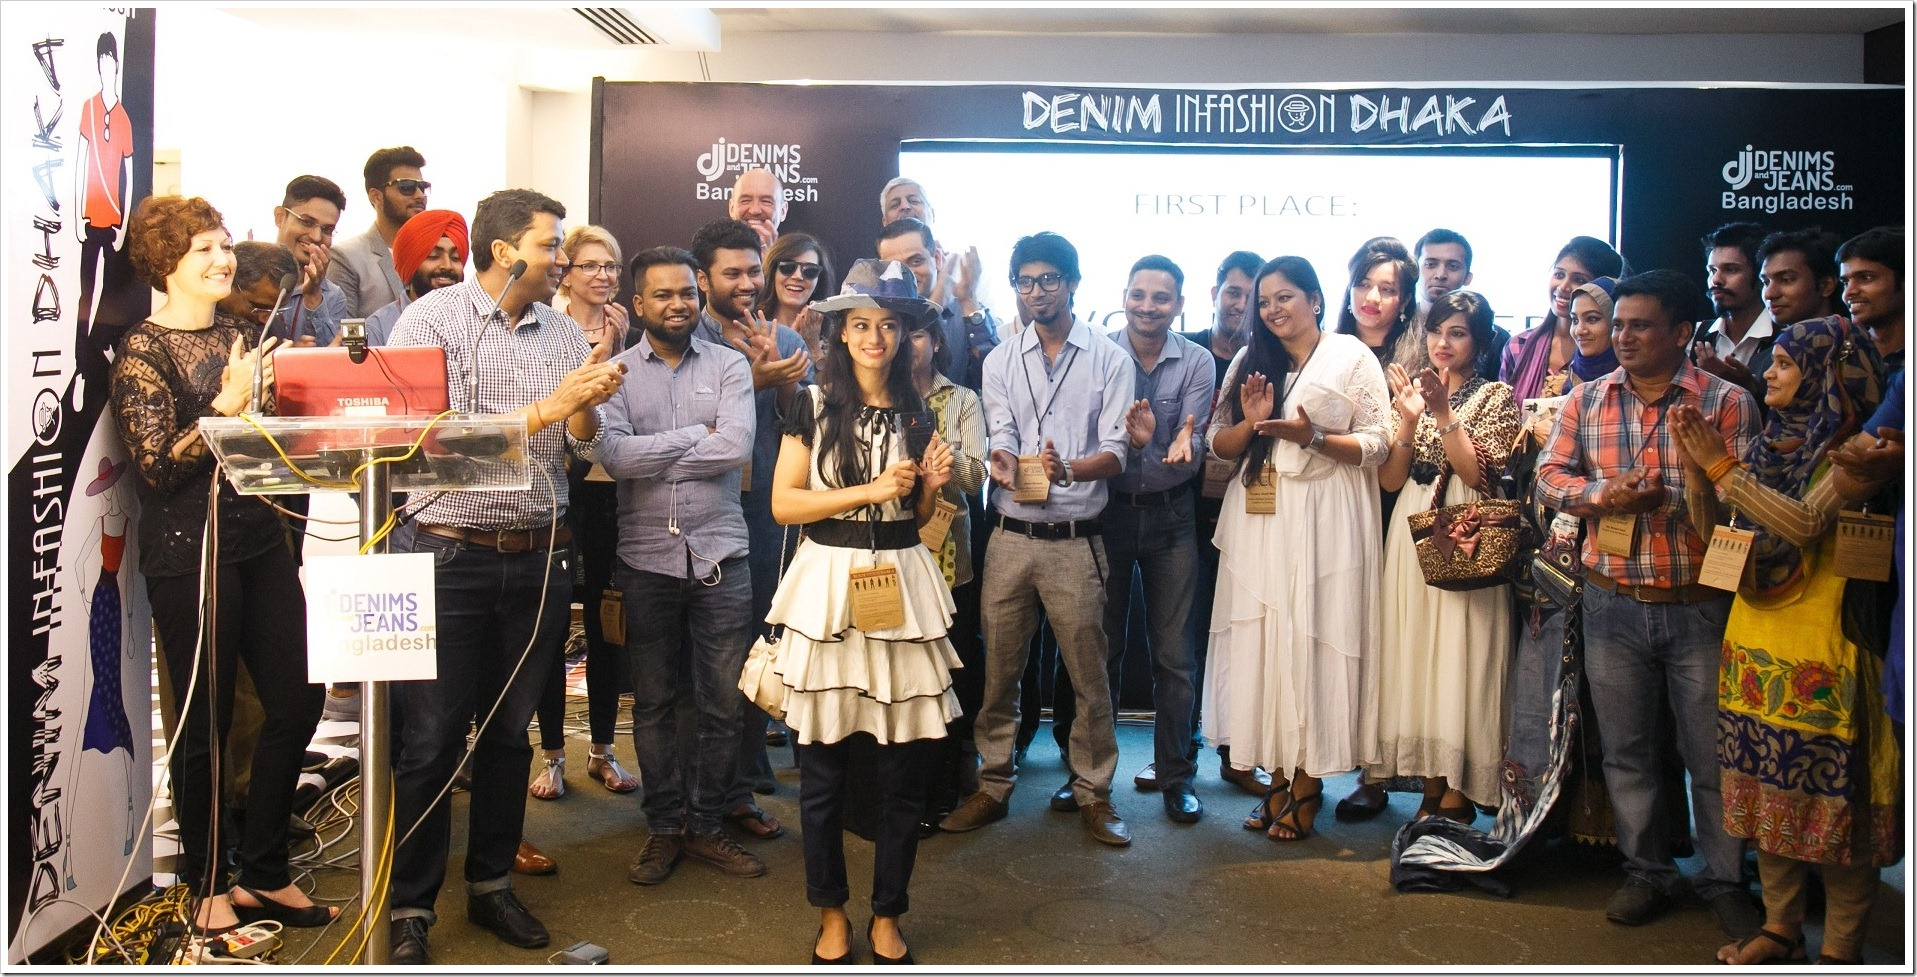 Purna Ahmed : Designer of beautiful Denim Hat at 5th Edition Denimsandjeans.com Bangladesh